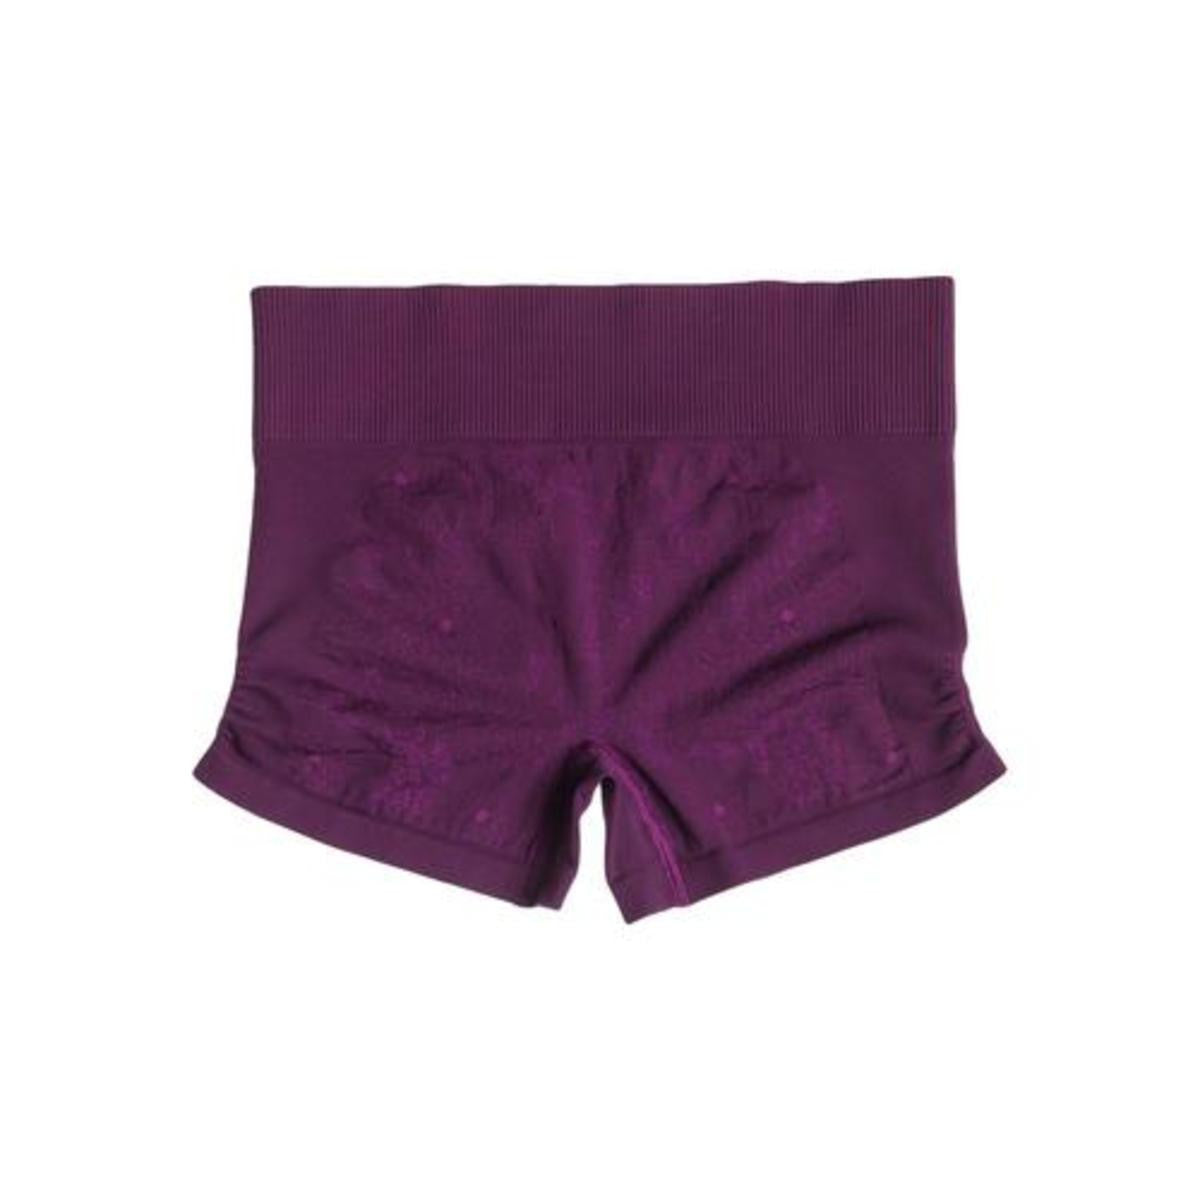 Roxy Stunner Seamless Shorts Blackberry New Womens